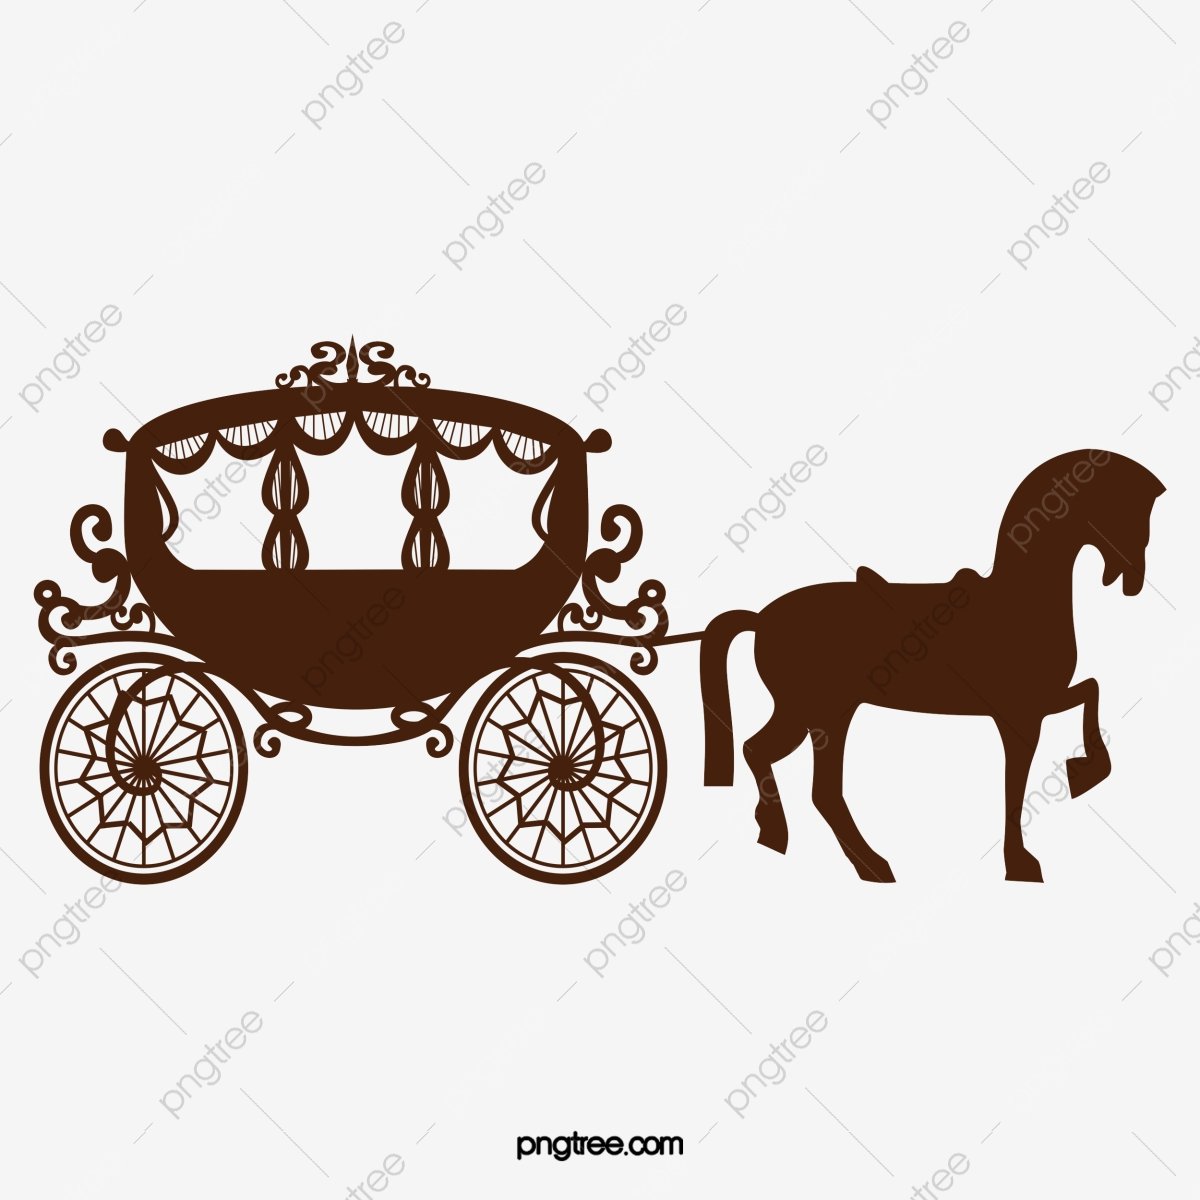 Dark Horse Horse Vector Horse Clipart Carriage Png And Vector With Transparent Background For Free Download